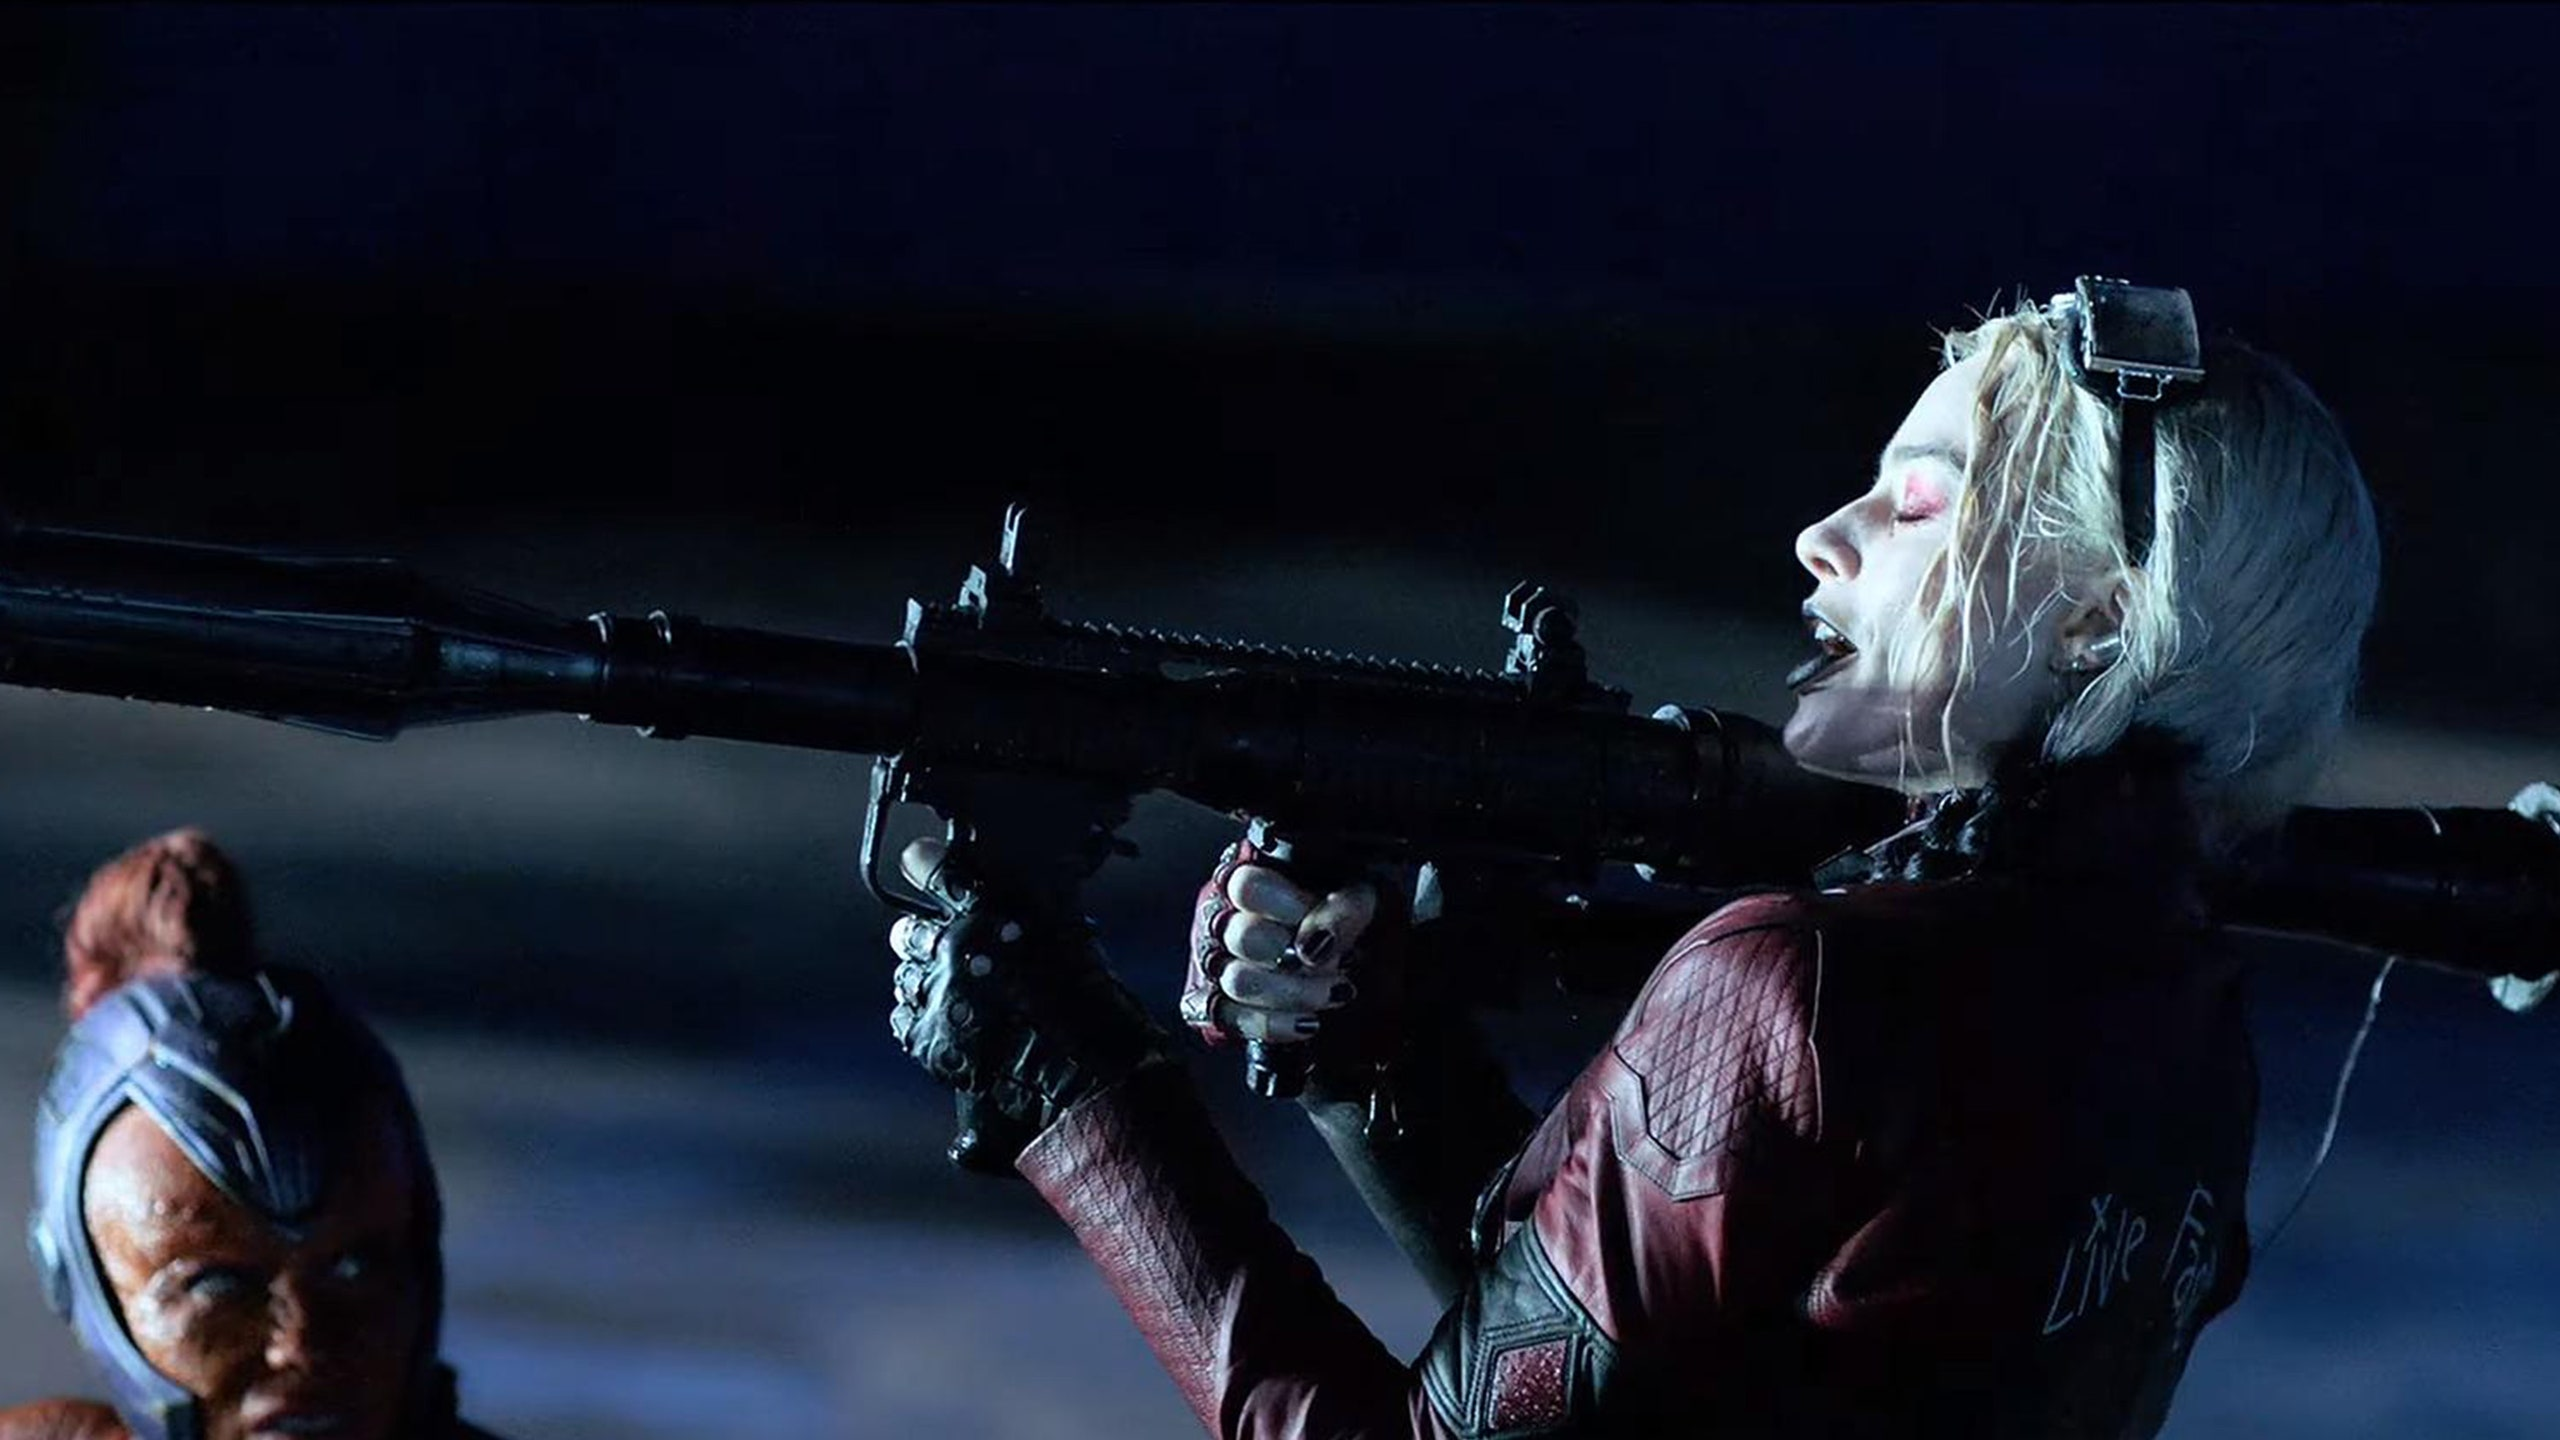 Harley Quinn (Margot Robbie) - The Suicide Squad